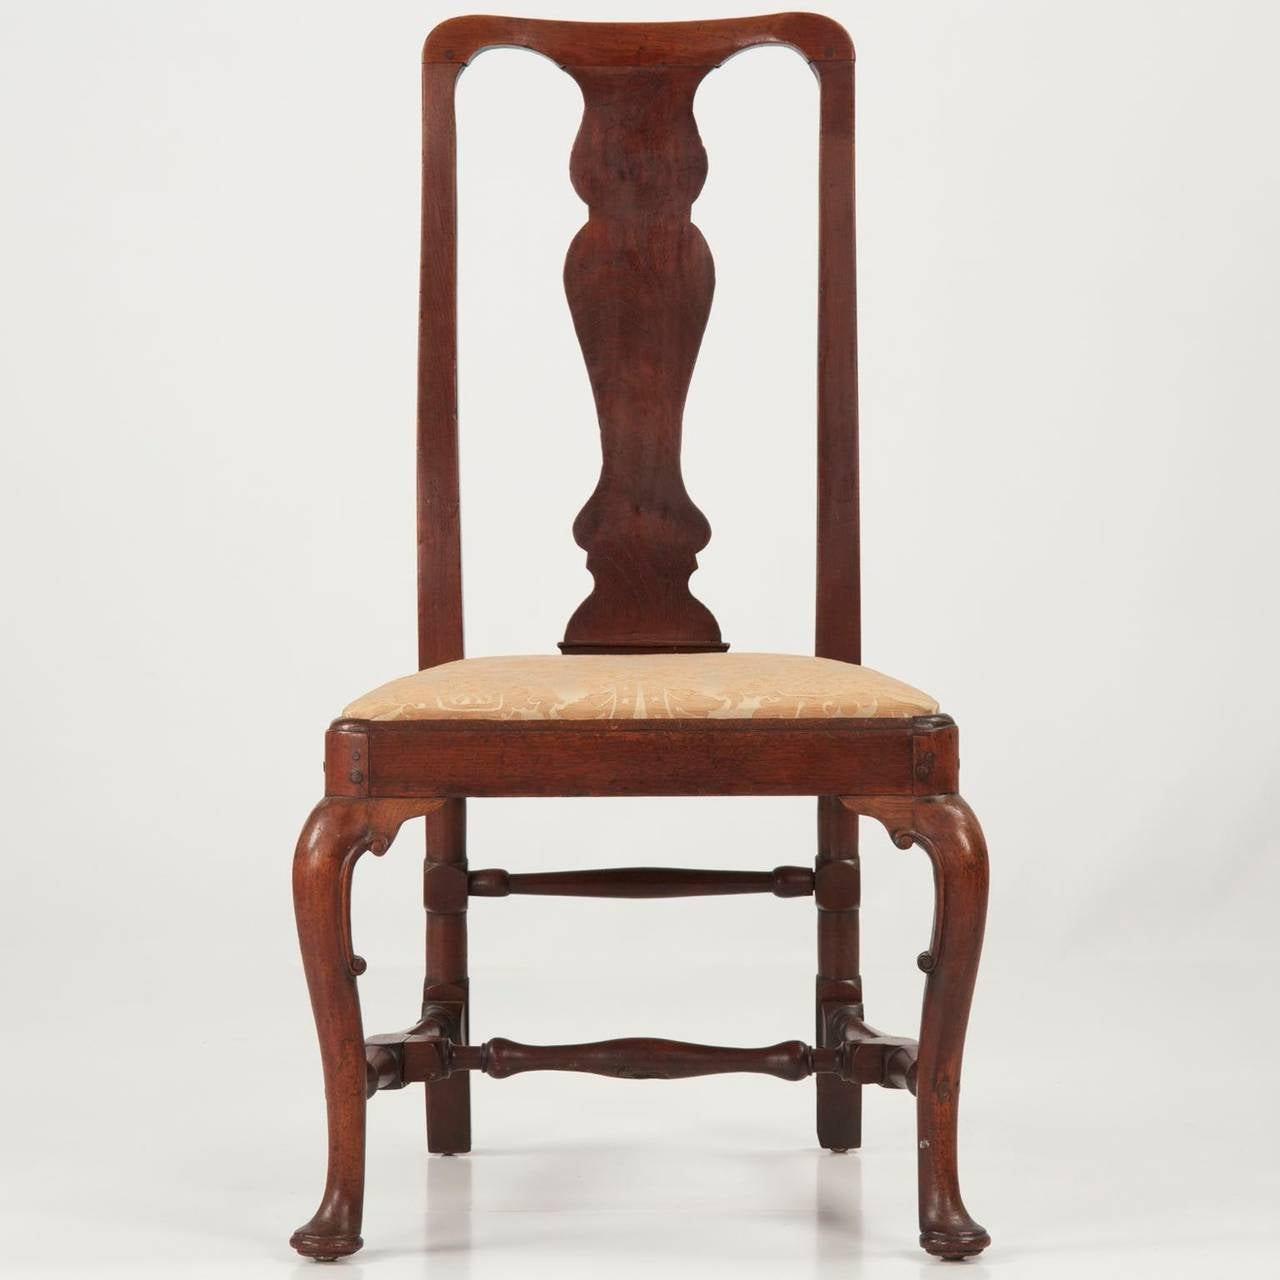 Queen anne walnut antique side chair circa 1725 1740 at for Queen anne furniture